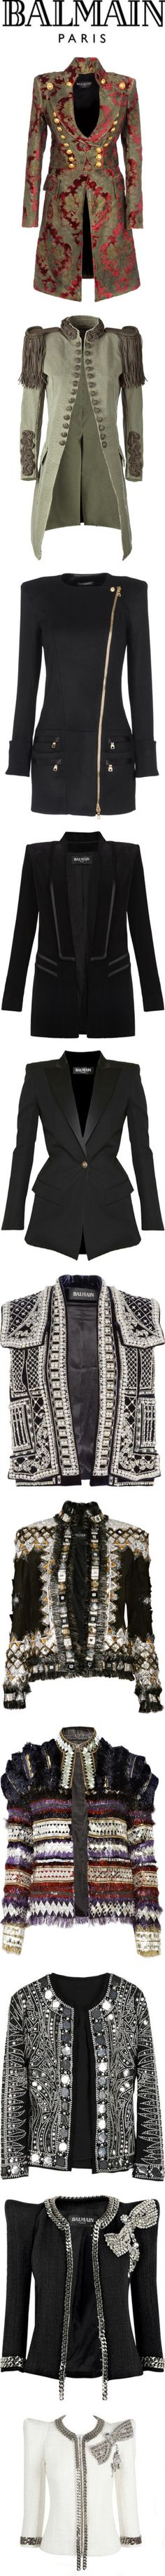 """Balmain"" by redflowergirl ❤ liked on Polyvore"